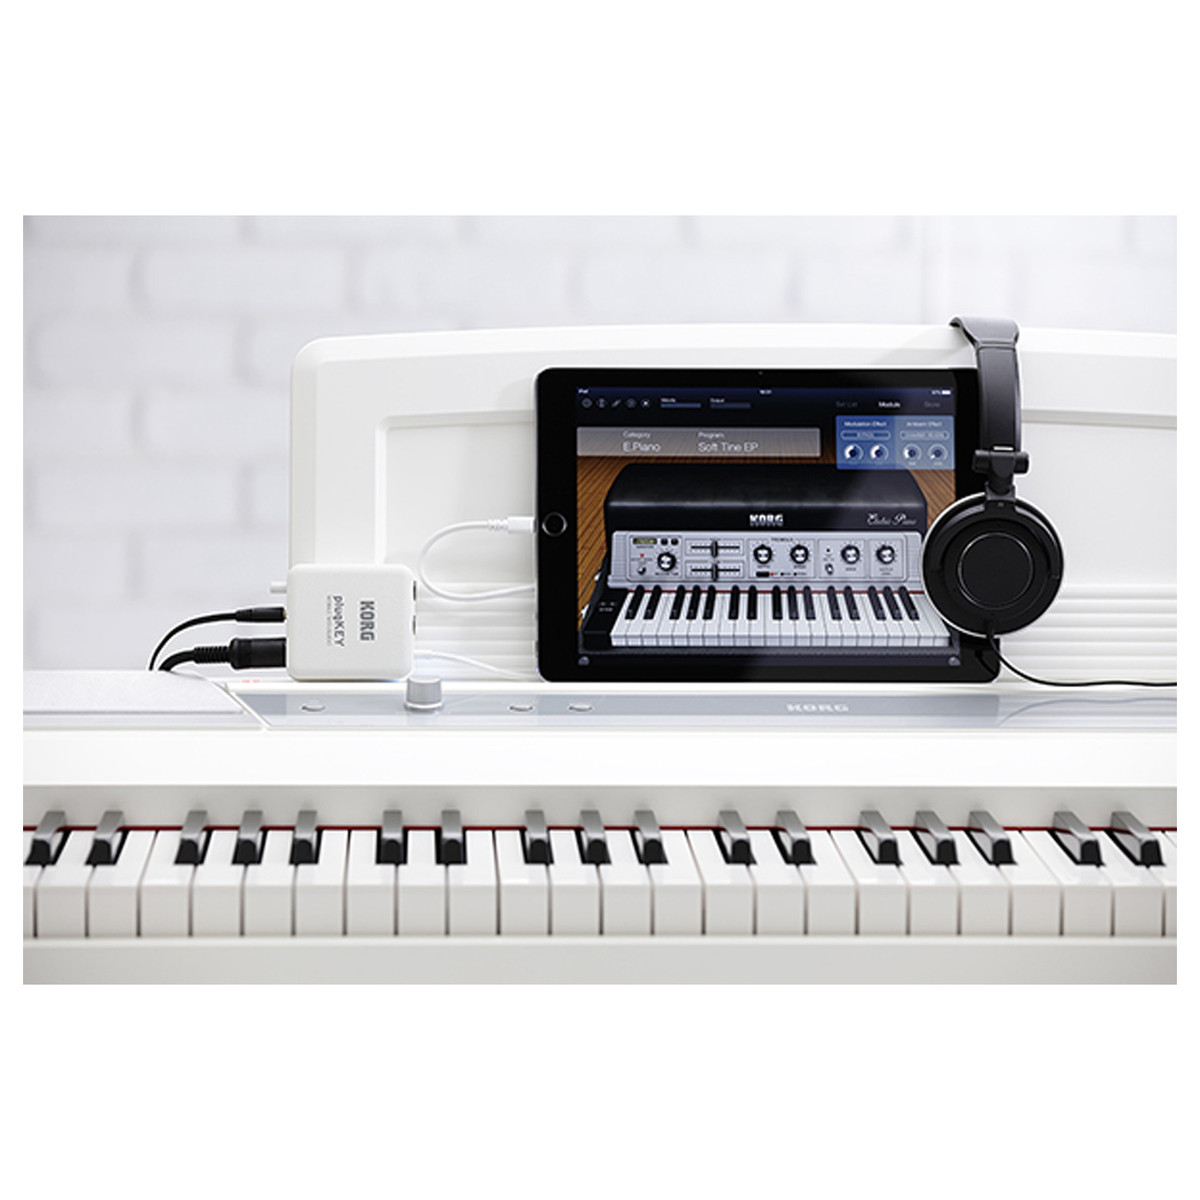 korg plugkey midi audio interface for ios devices white at gear4music. Black Bedroom Furniture Sets. Home Design Ideas